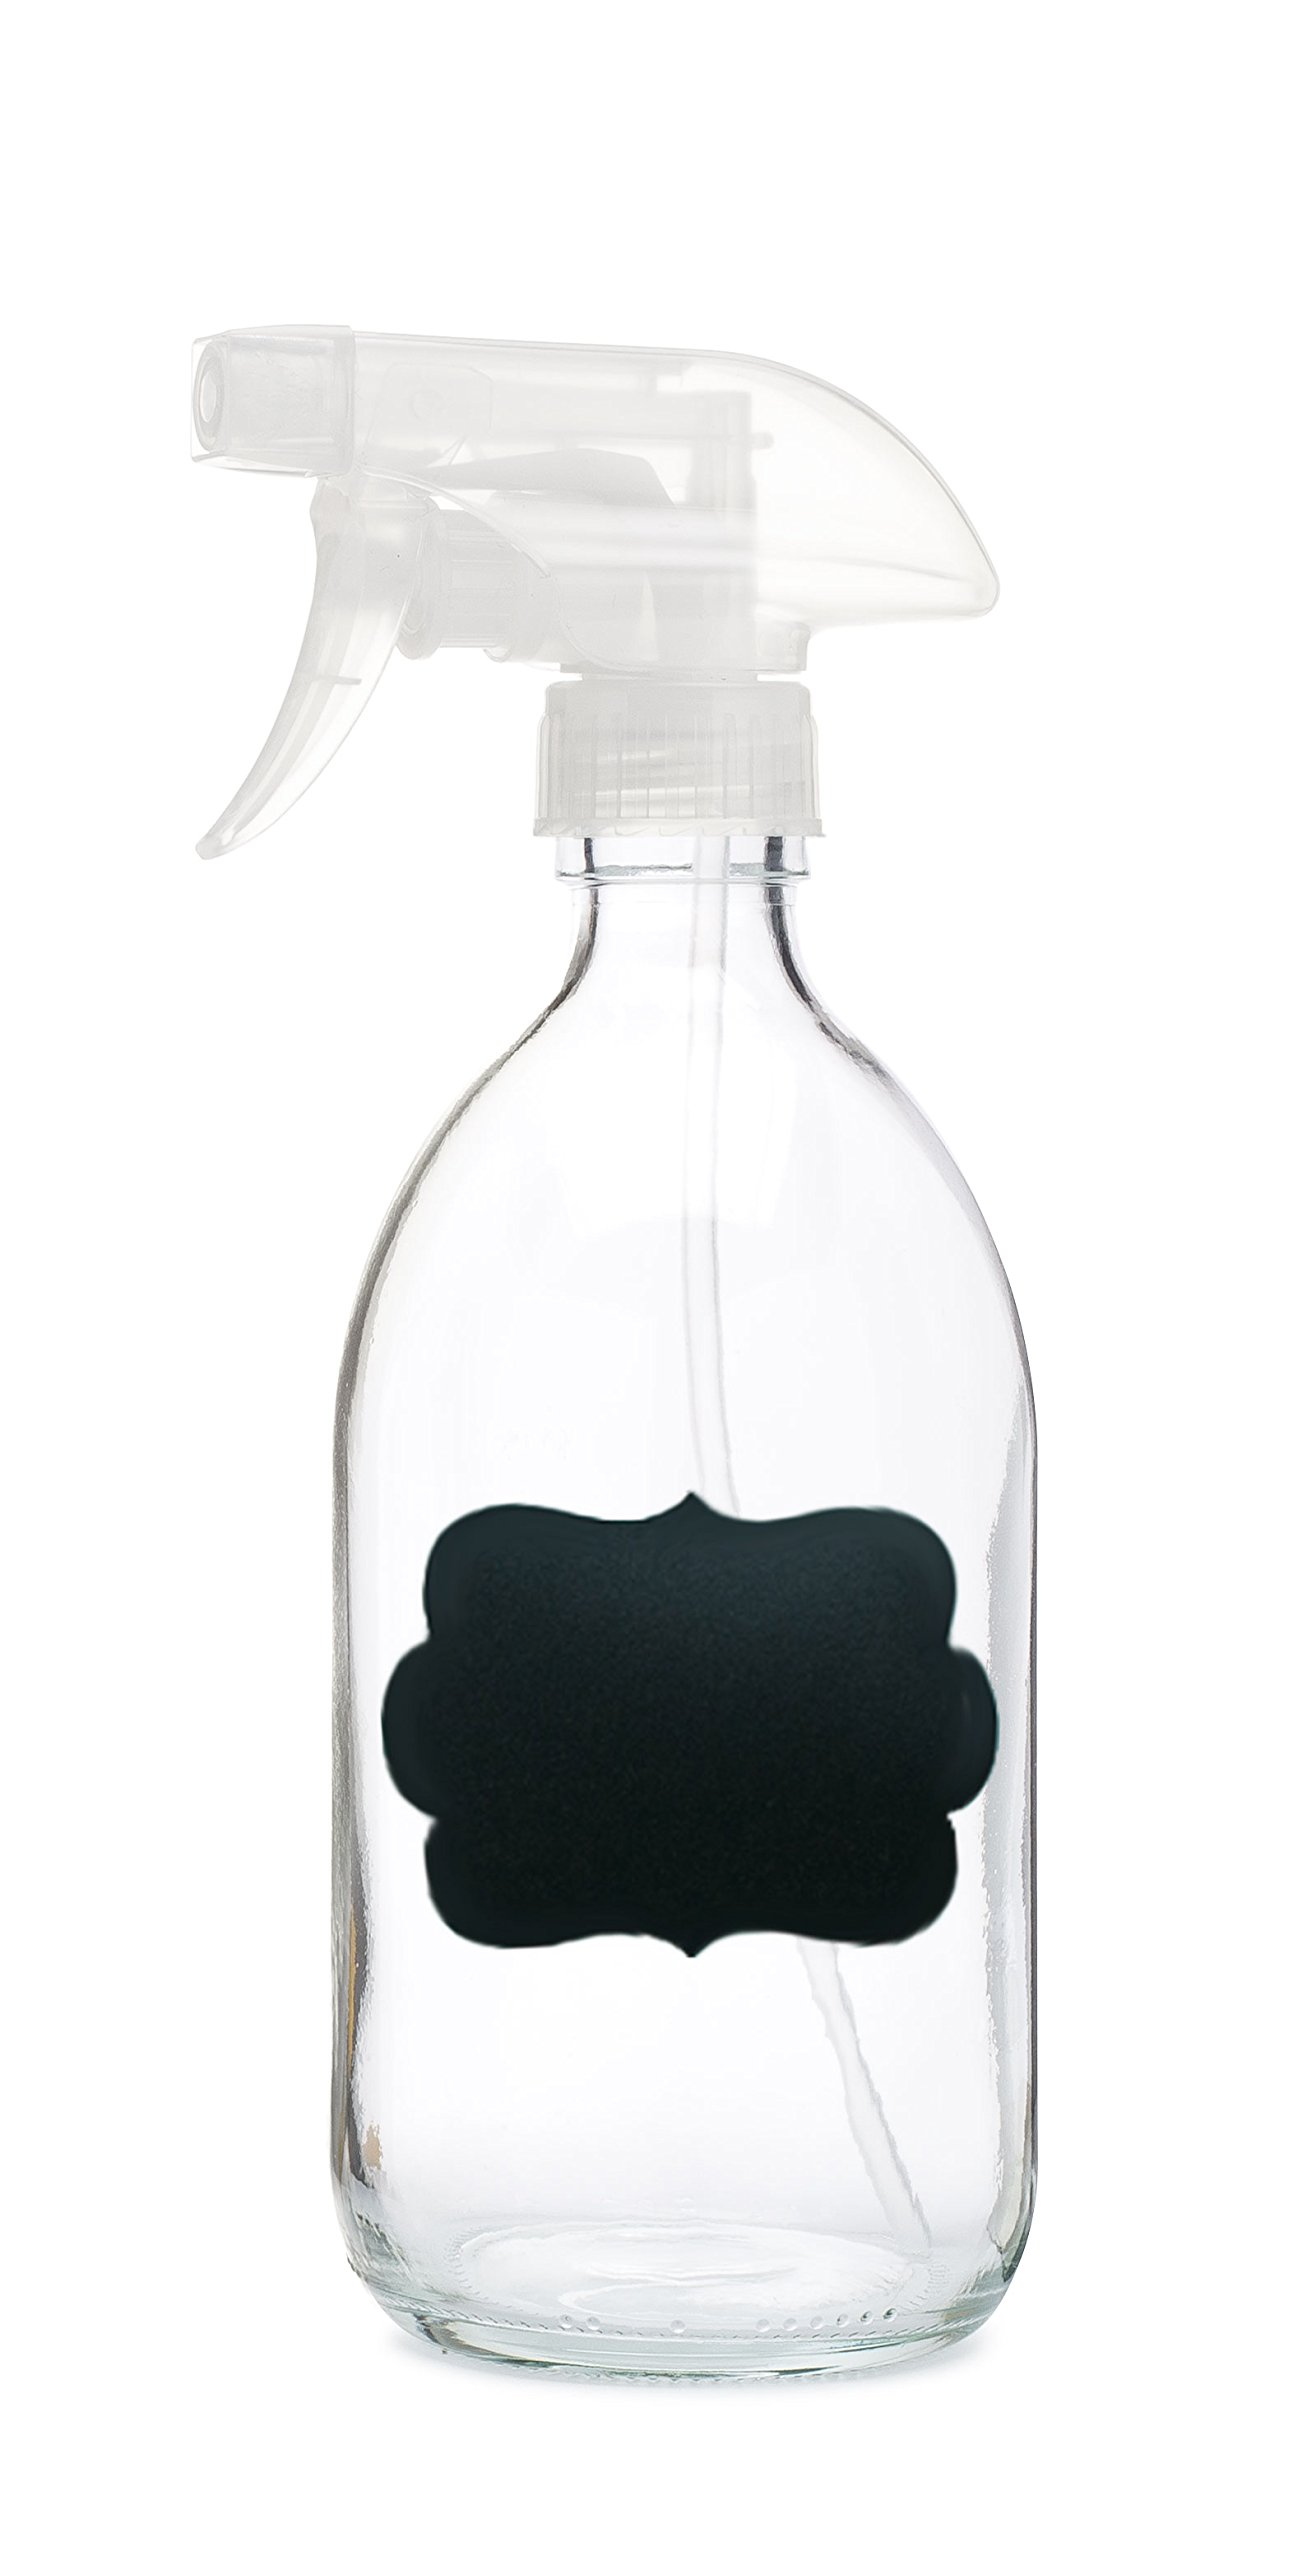 Savon Glass Spray Bottle w/Chalkboard Label Clear Trigger - Refillable Container Great for Beauty, Aromatherapy - Features Durable Clear Trigger Sprayer w/Spray and Stream Nozzle Settings